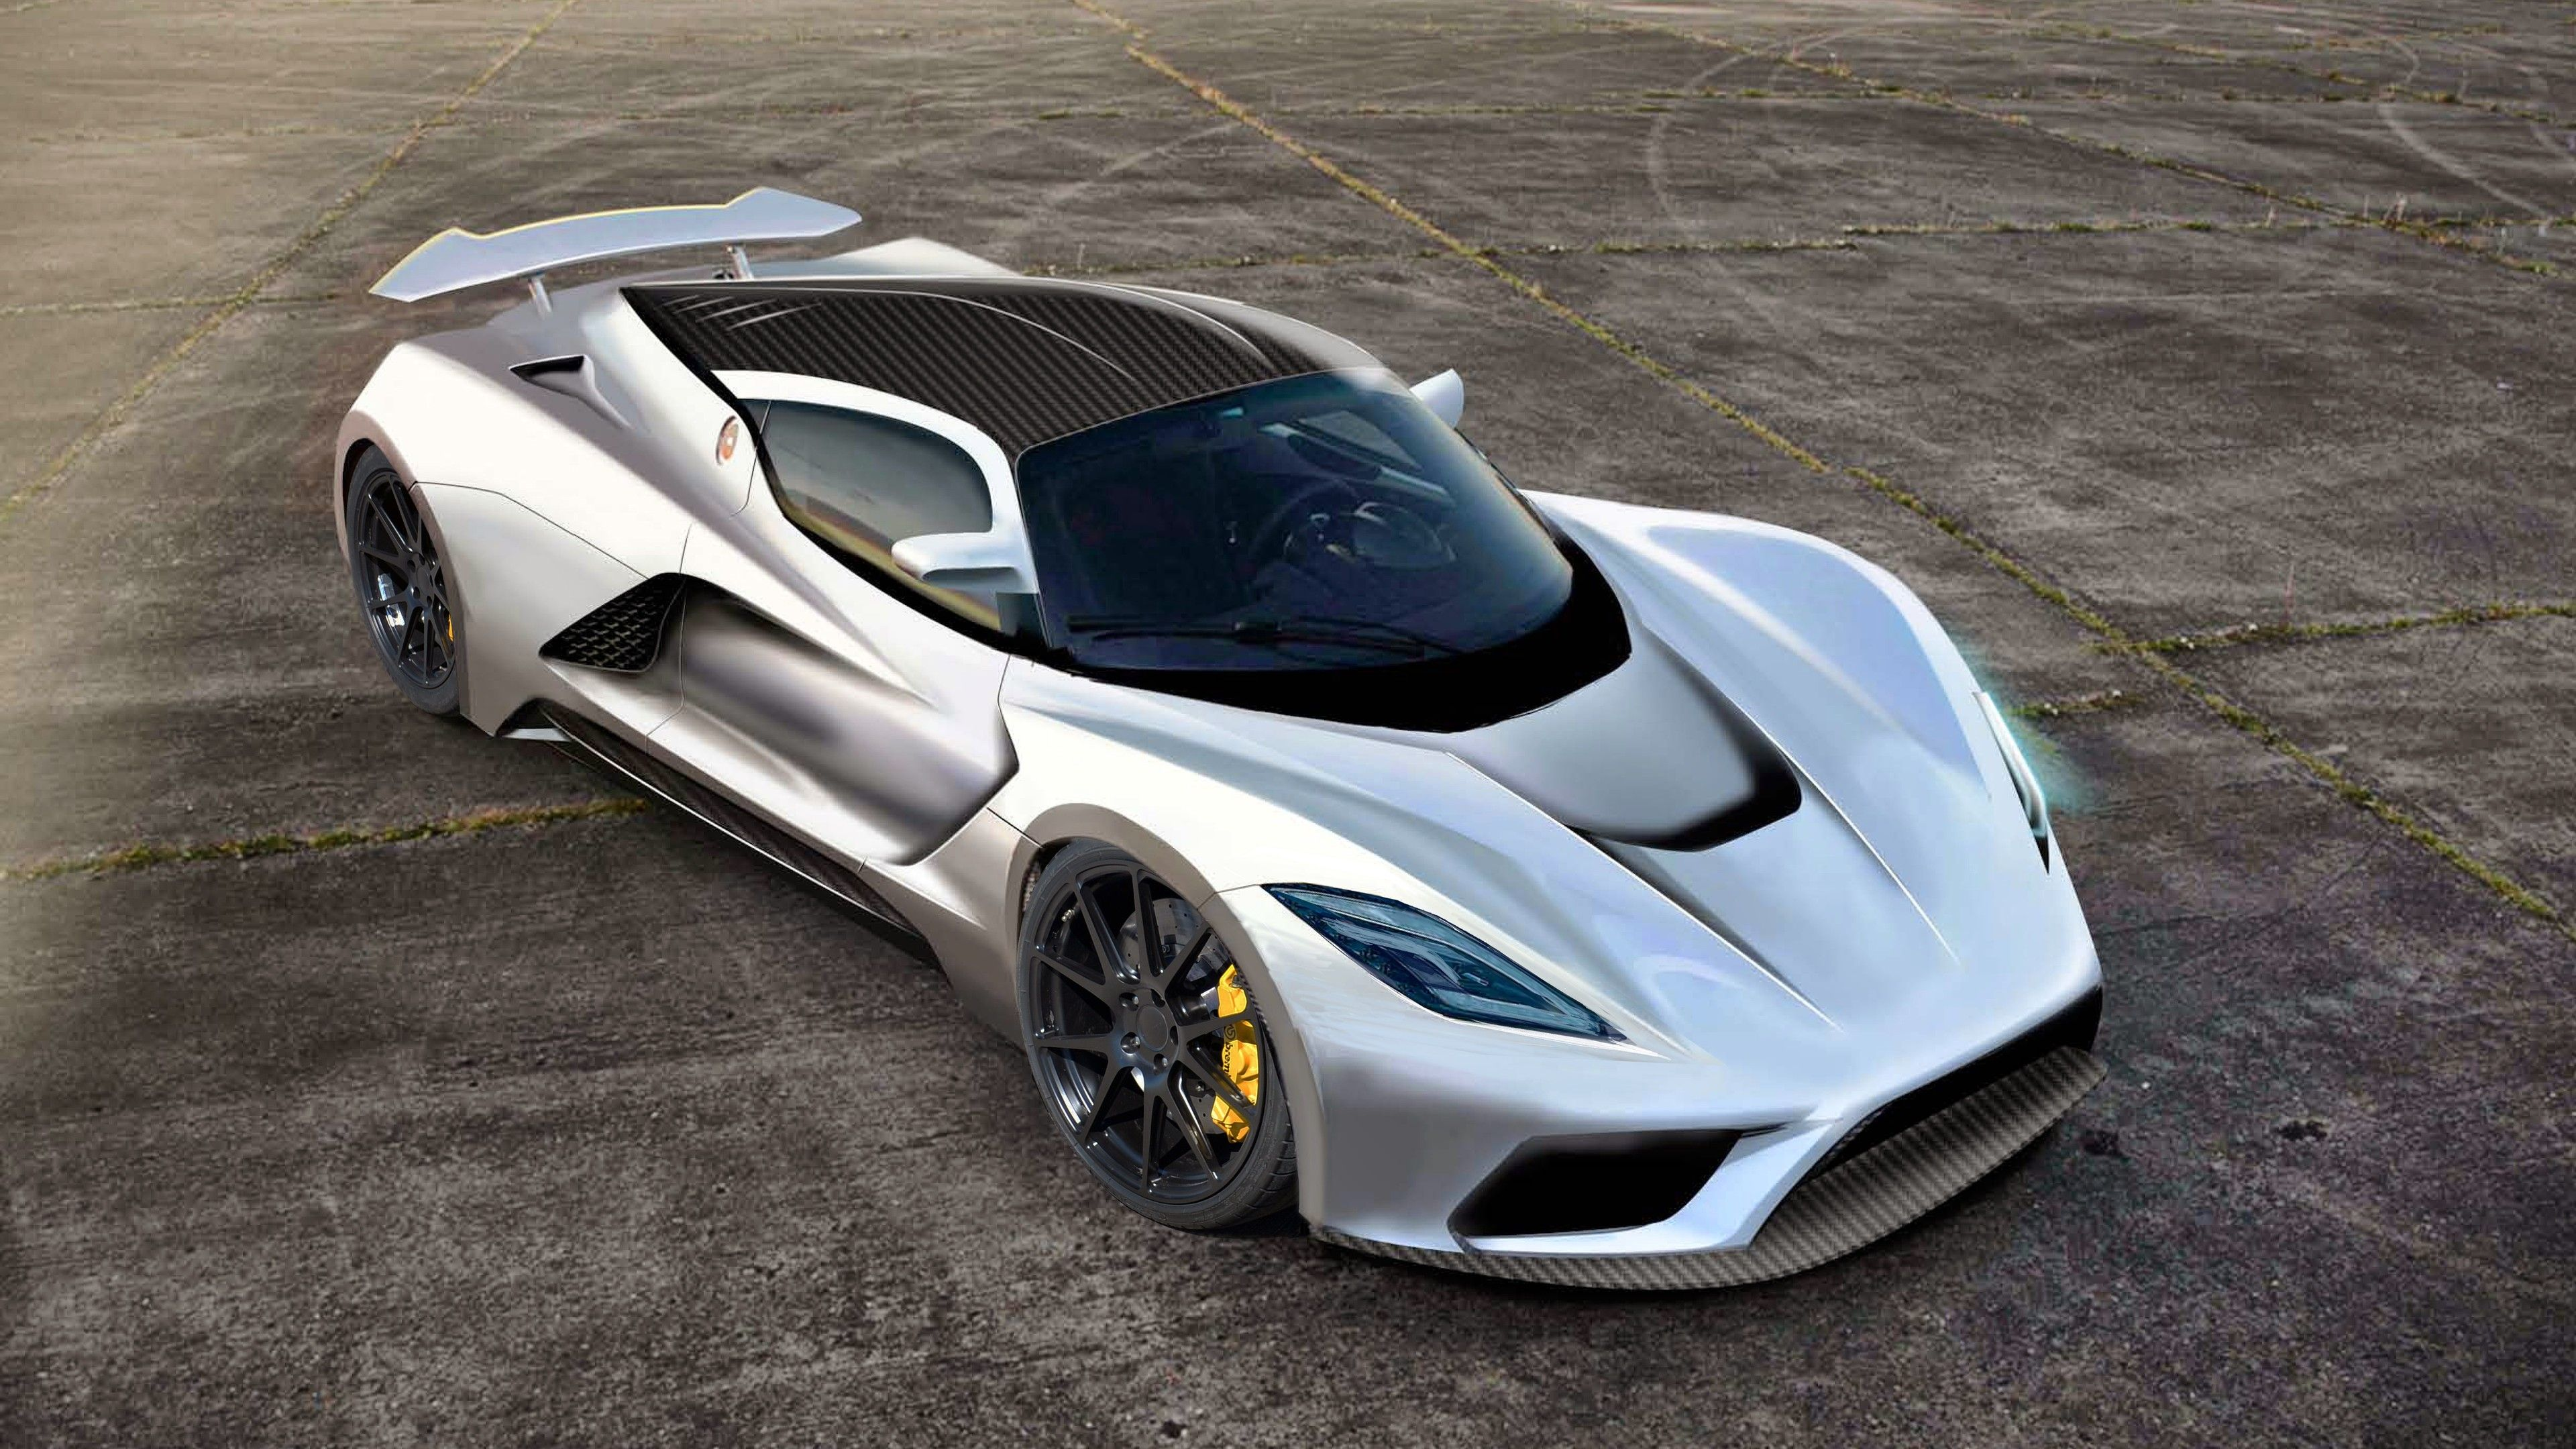 hennessey 4k hennessey wallpapers hd wallpapers cars wallpapers rh pinterest com